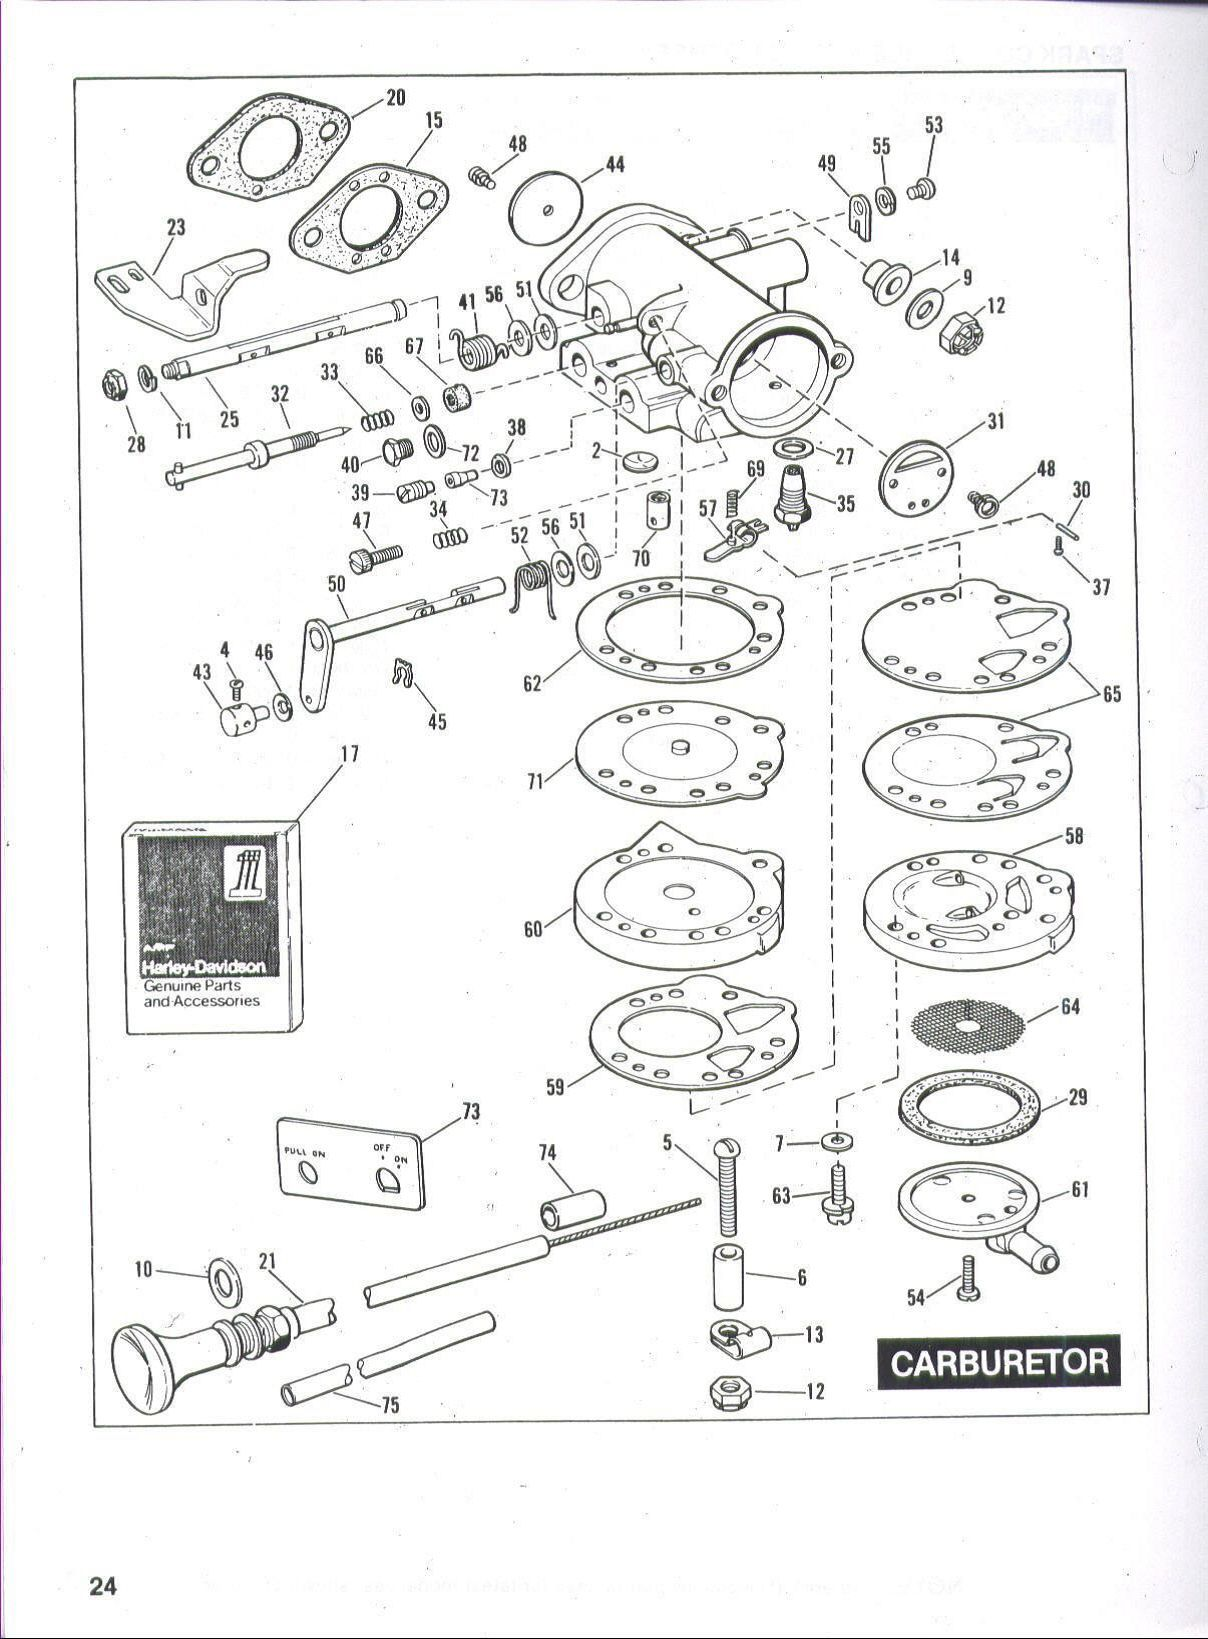 5176dbb44702a1adc4080edf7301936d harley davidson golf cart carburetor diagram utv stuff harley davidson golf cart wiring diagram at eliteediting.co